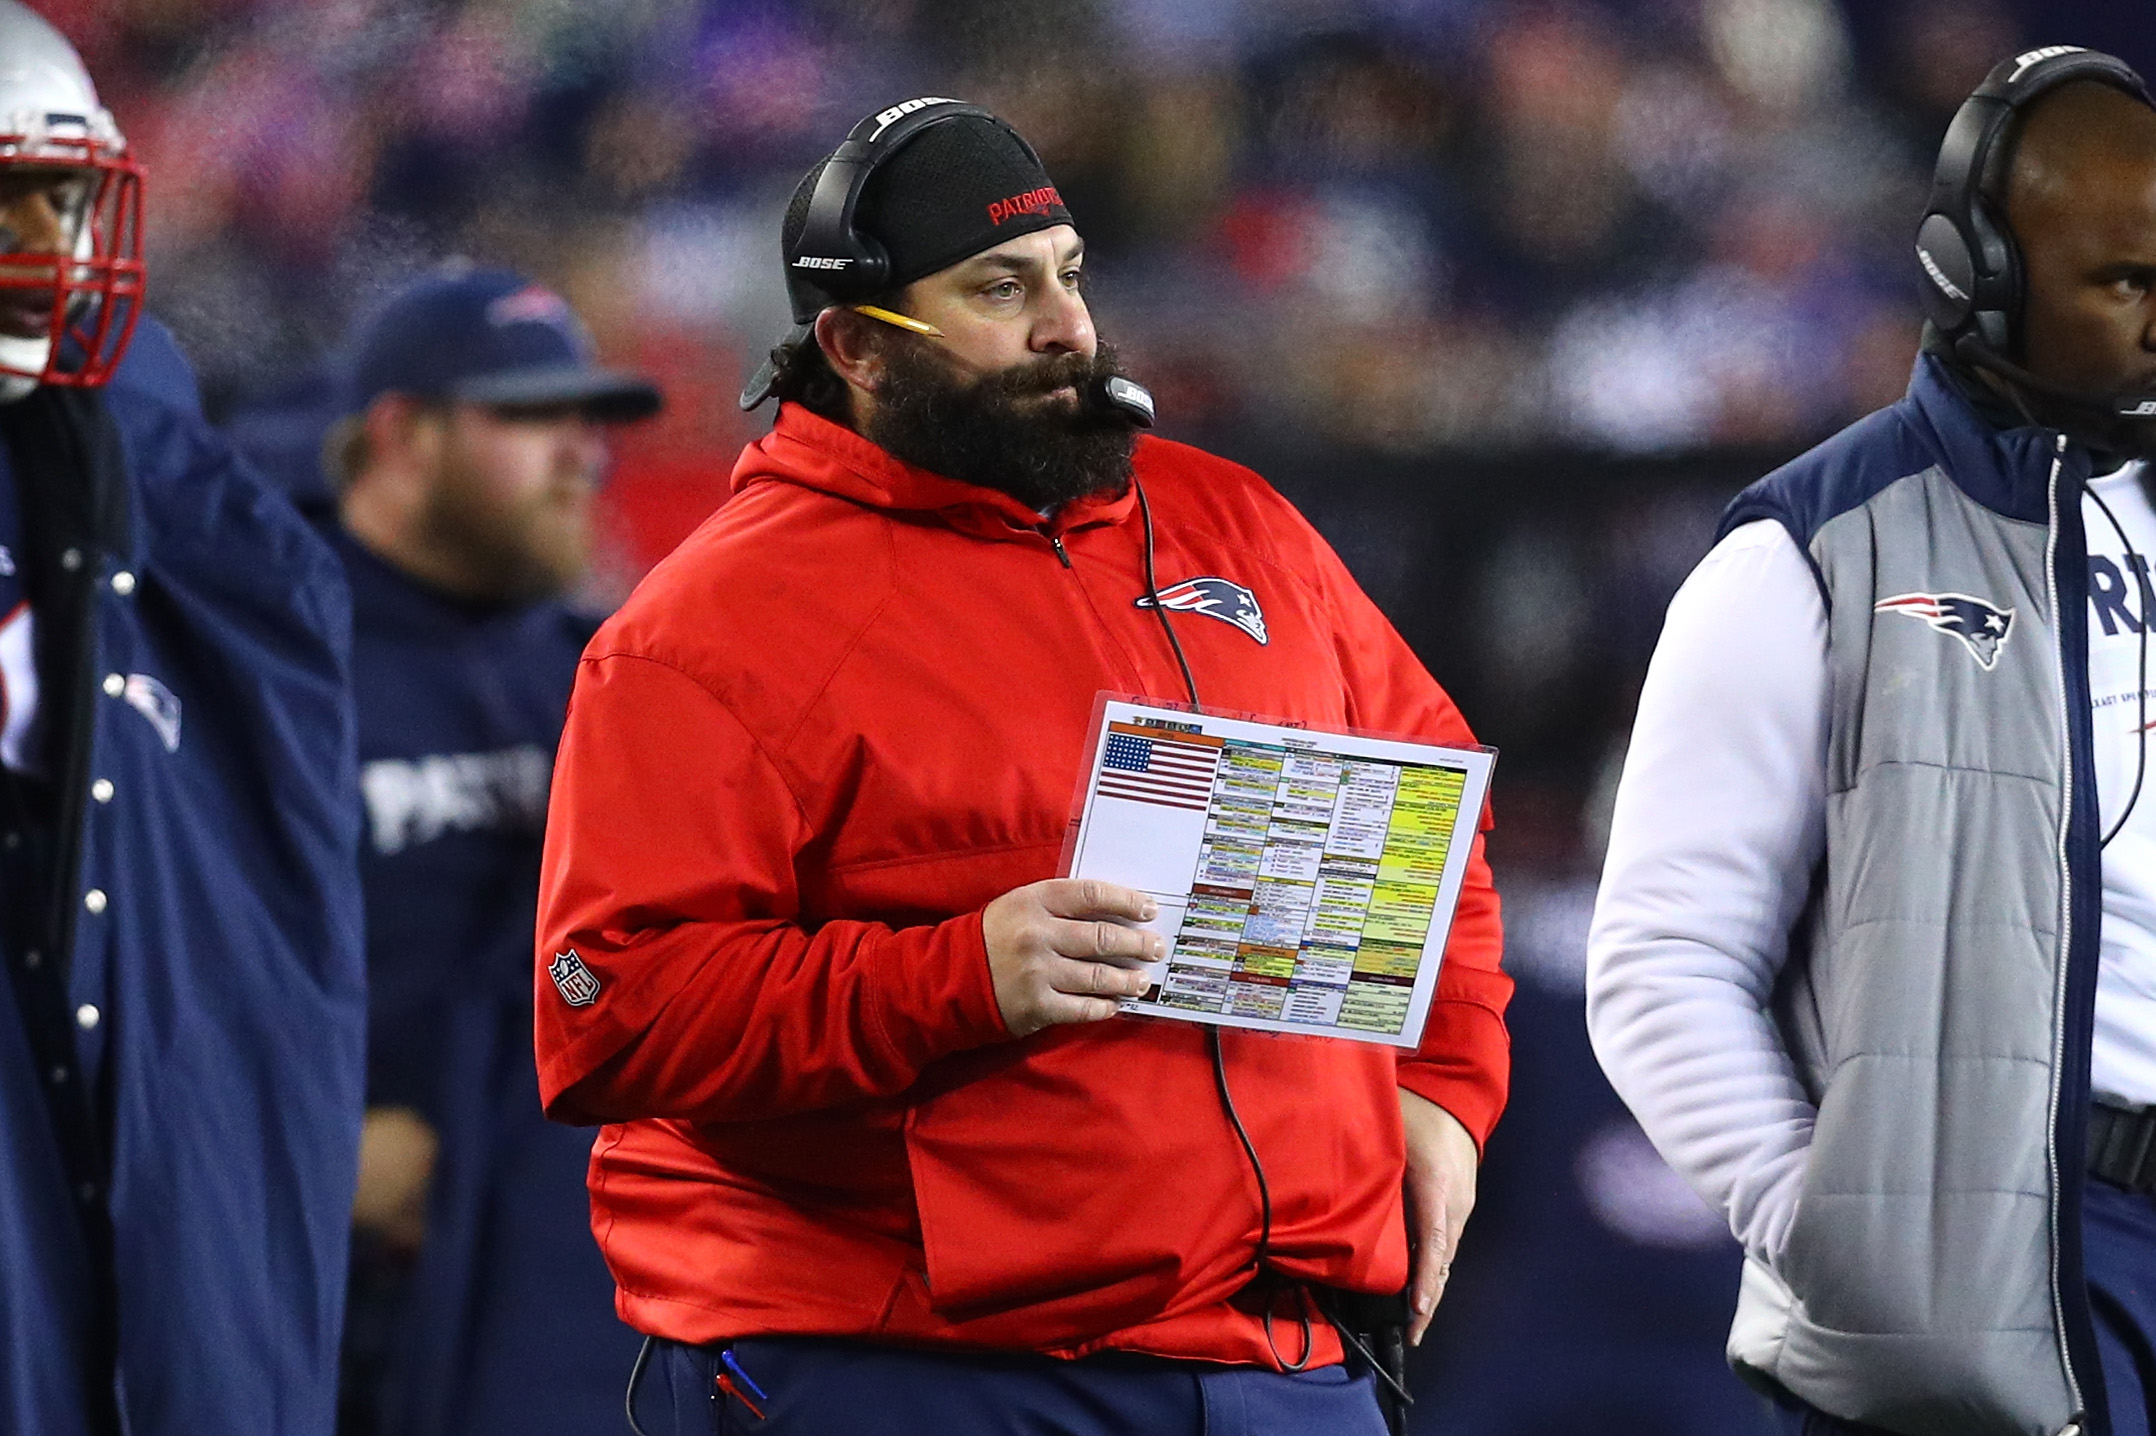 Patriots Defensive Coordinator Matt Patricia 'Likely' To Be Named Lions Next Coach